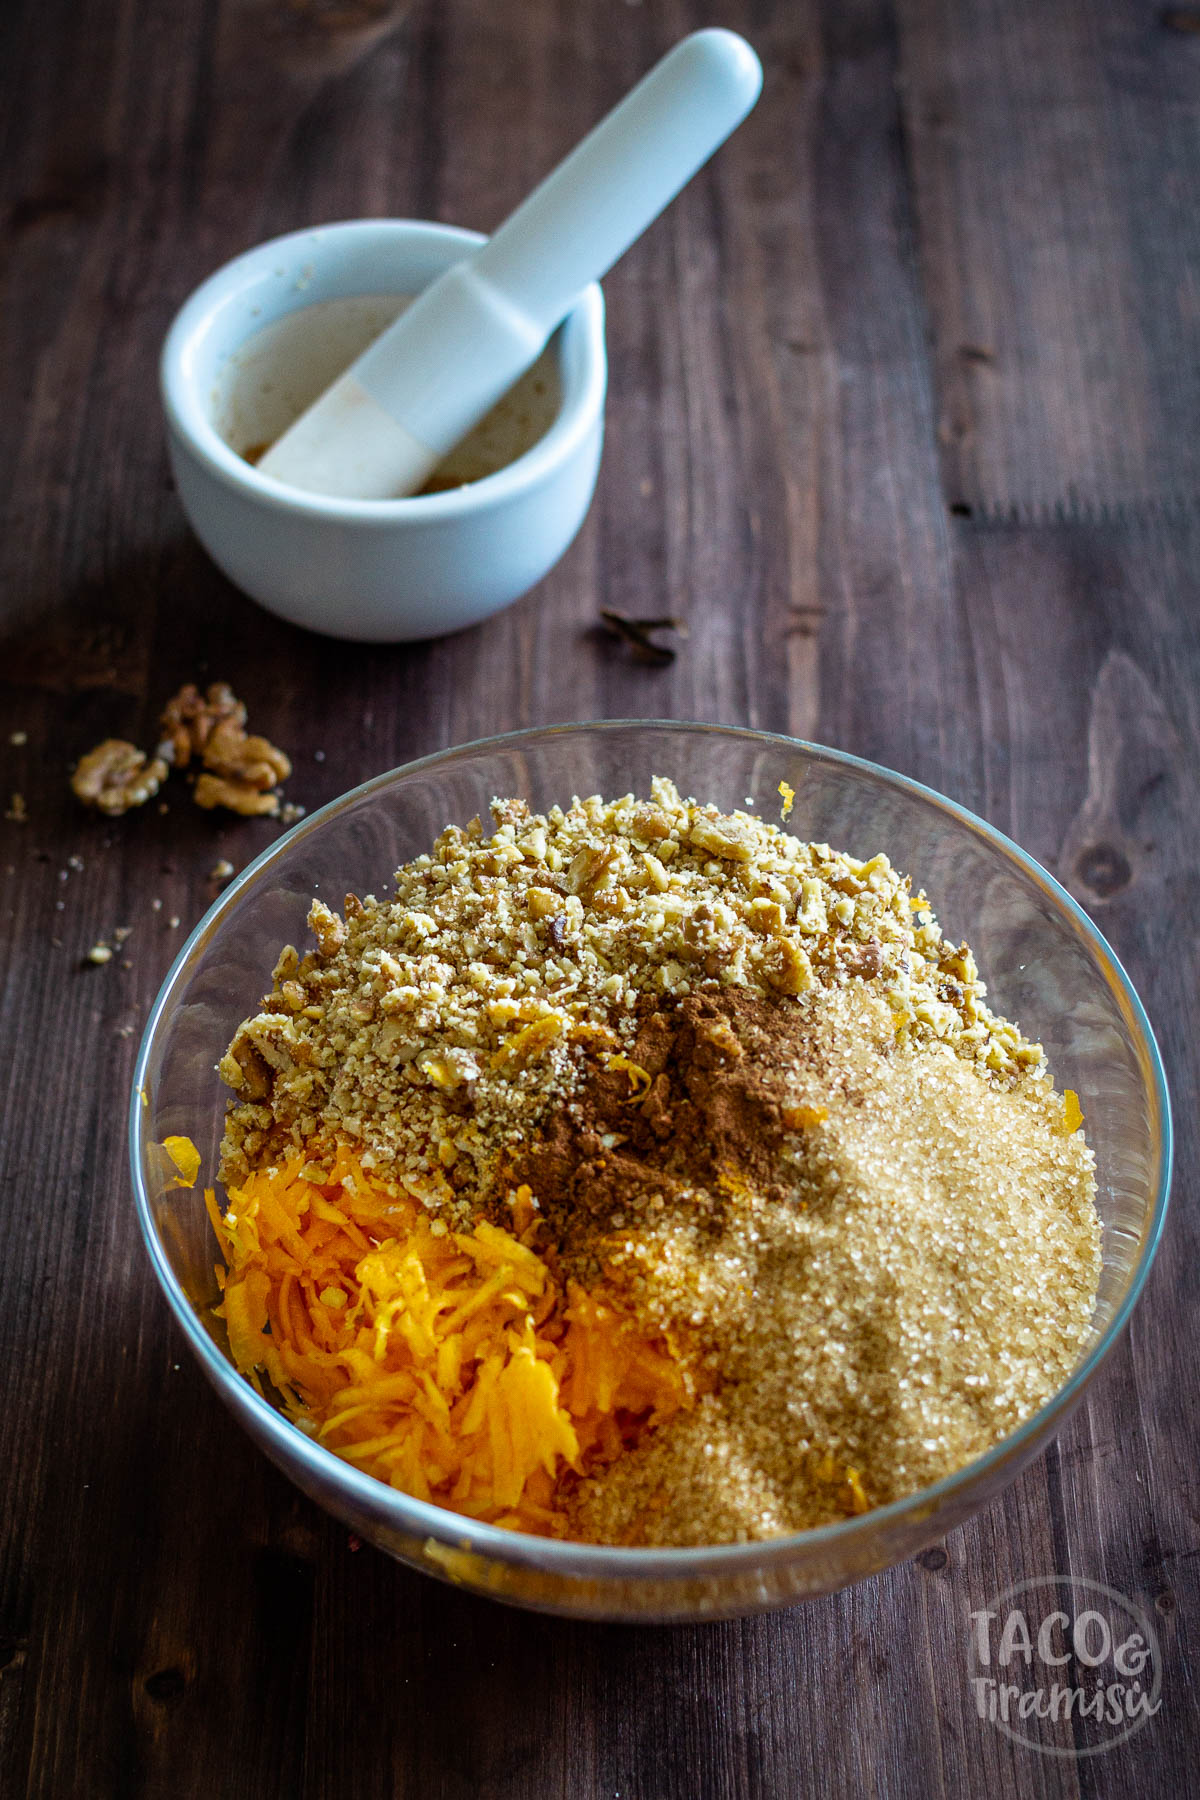 grated pumpkin, sugar, walnuts and spices in a bowl